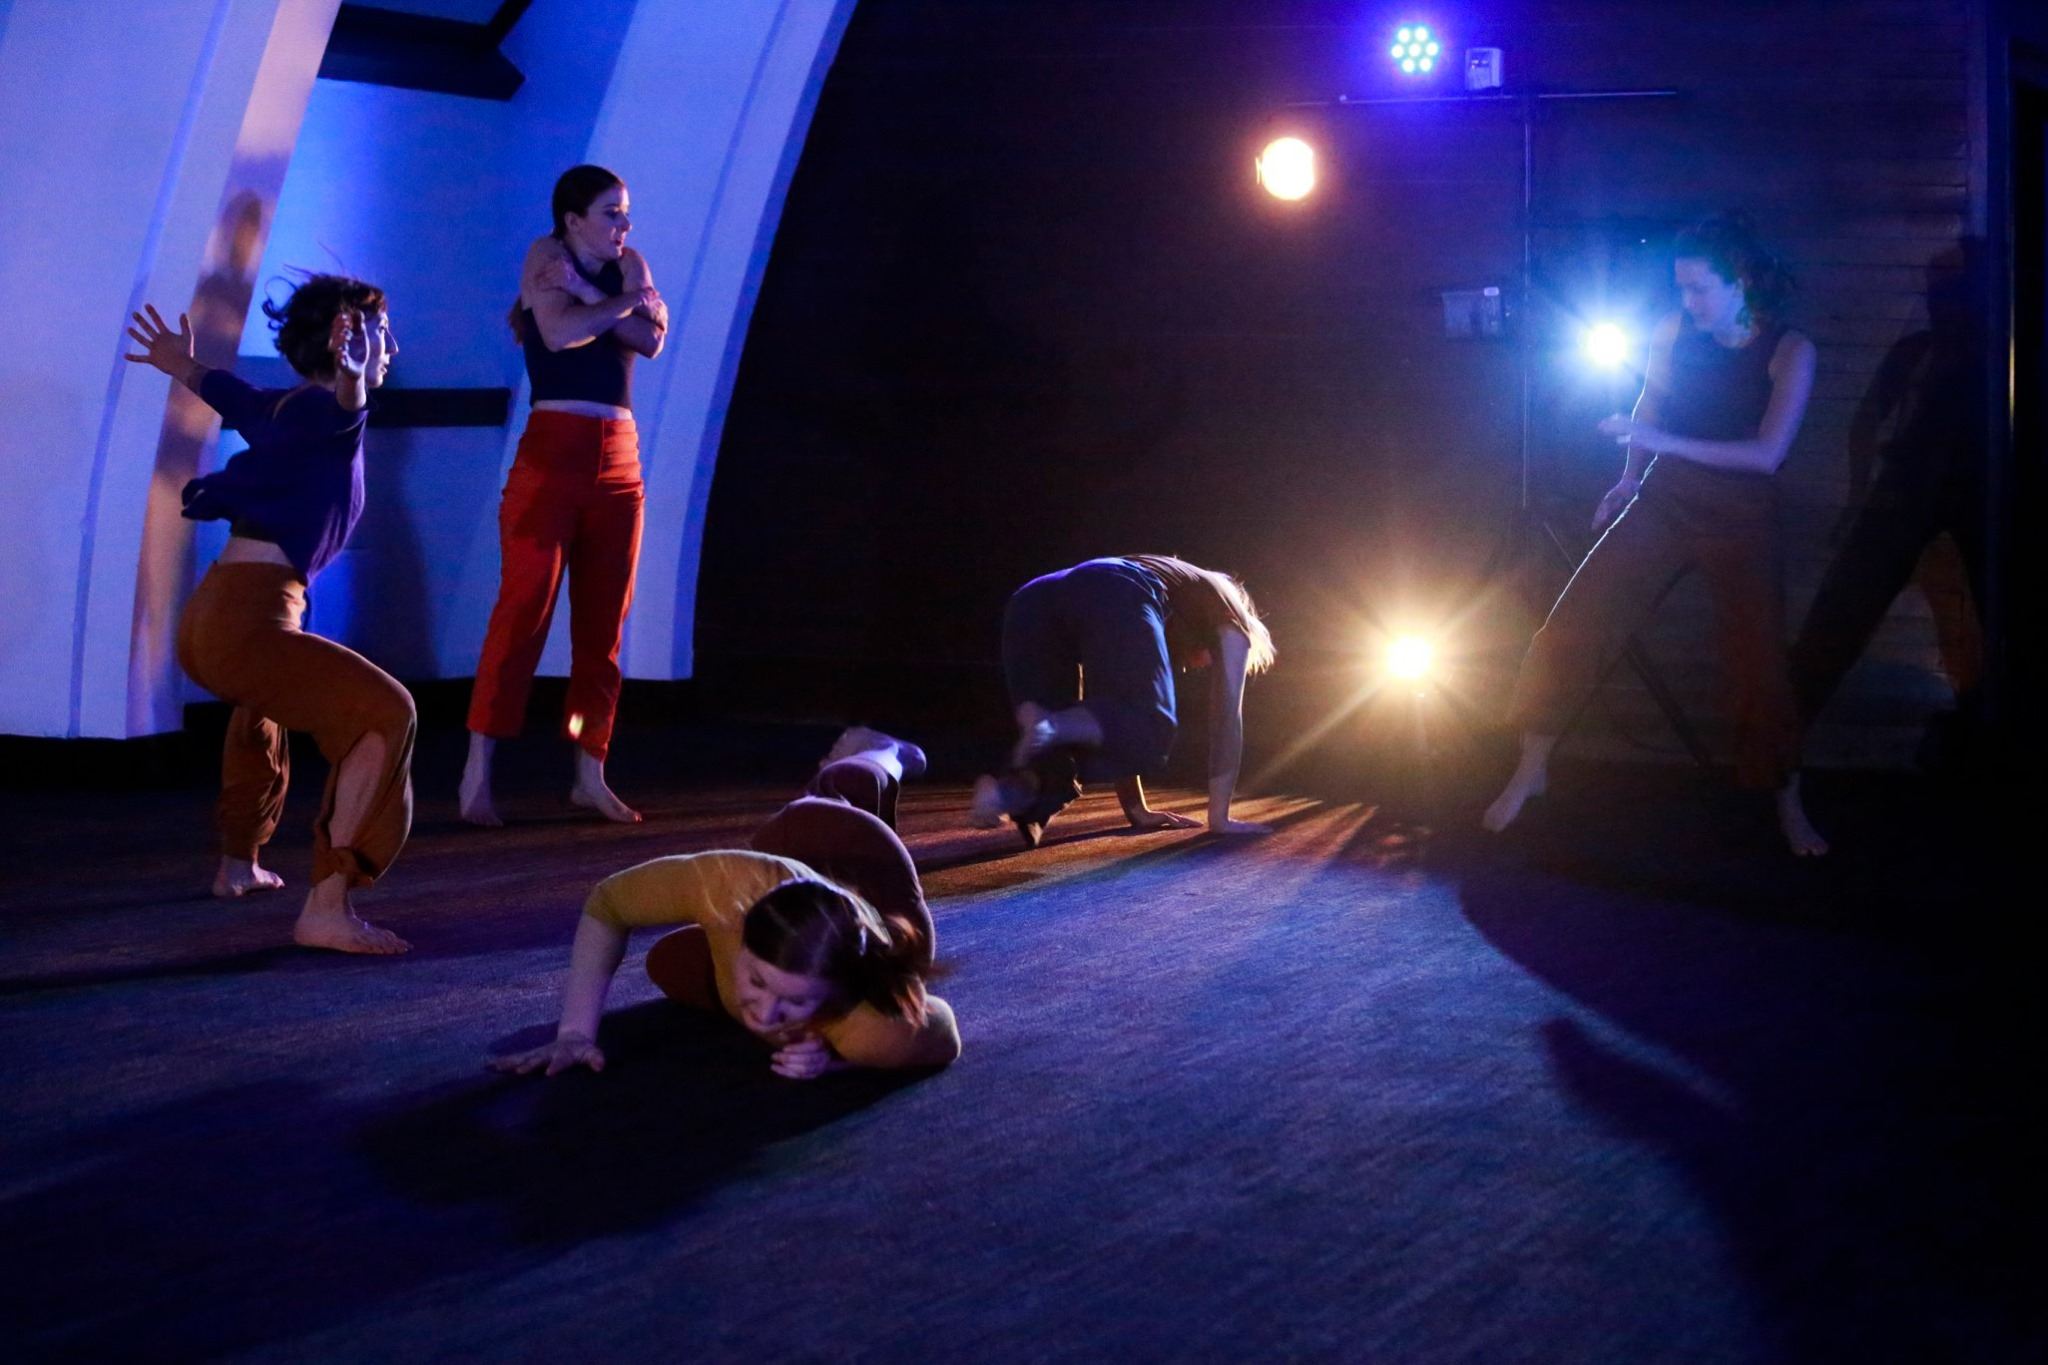 Five women are in mid-action. The room is dark, cast in shades of blue and purple. One woman has her arms flung wide and is crouching. Another is falling to the ground. A third woman is pushing into the ground with her hands, holding herself up. The fourth woman is taking a power stance, her legs spread wide and rigid, as if to do a martial arts move. The fifth woman stands tall, her hands tightly clenched on her upper arms.